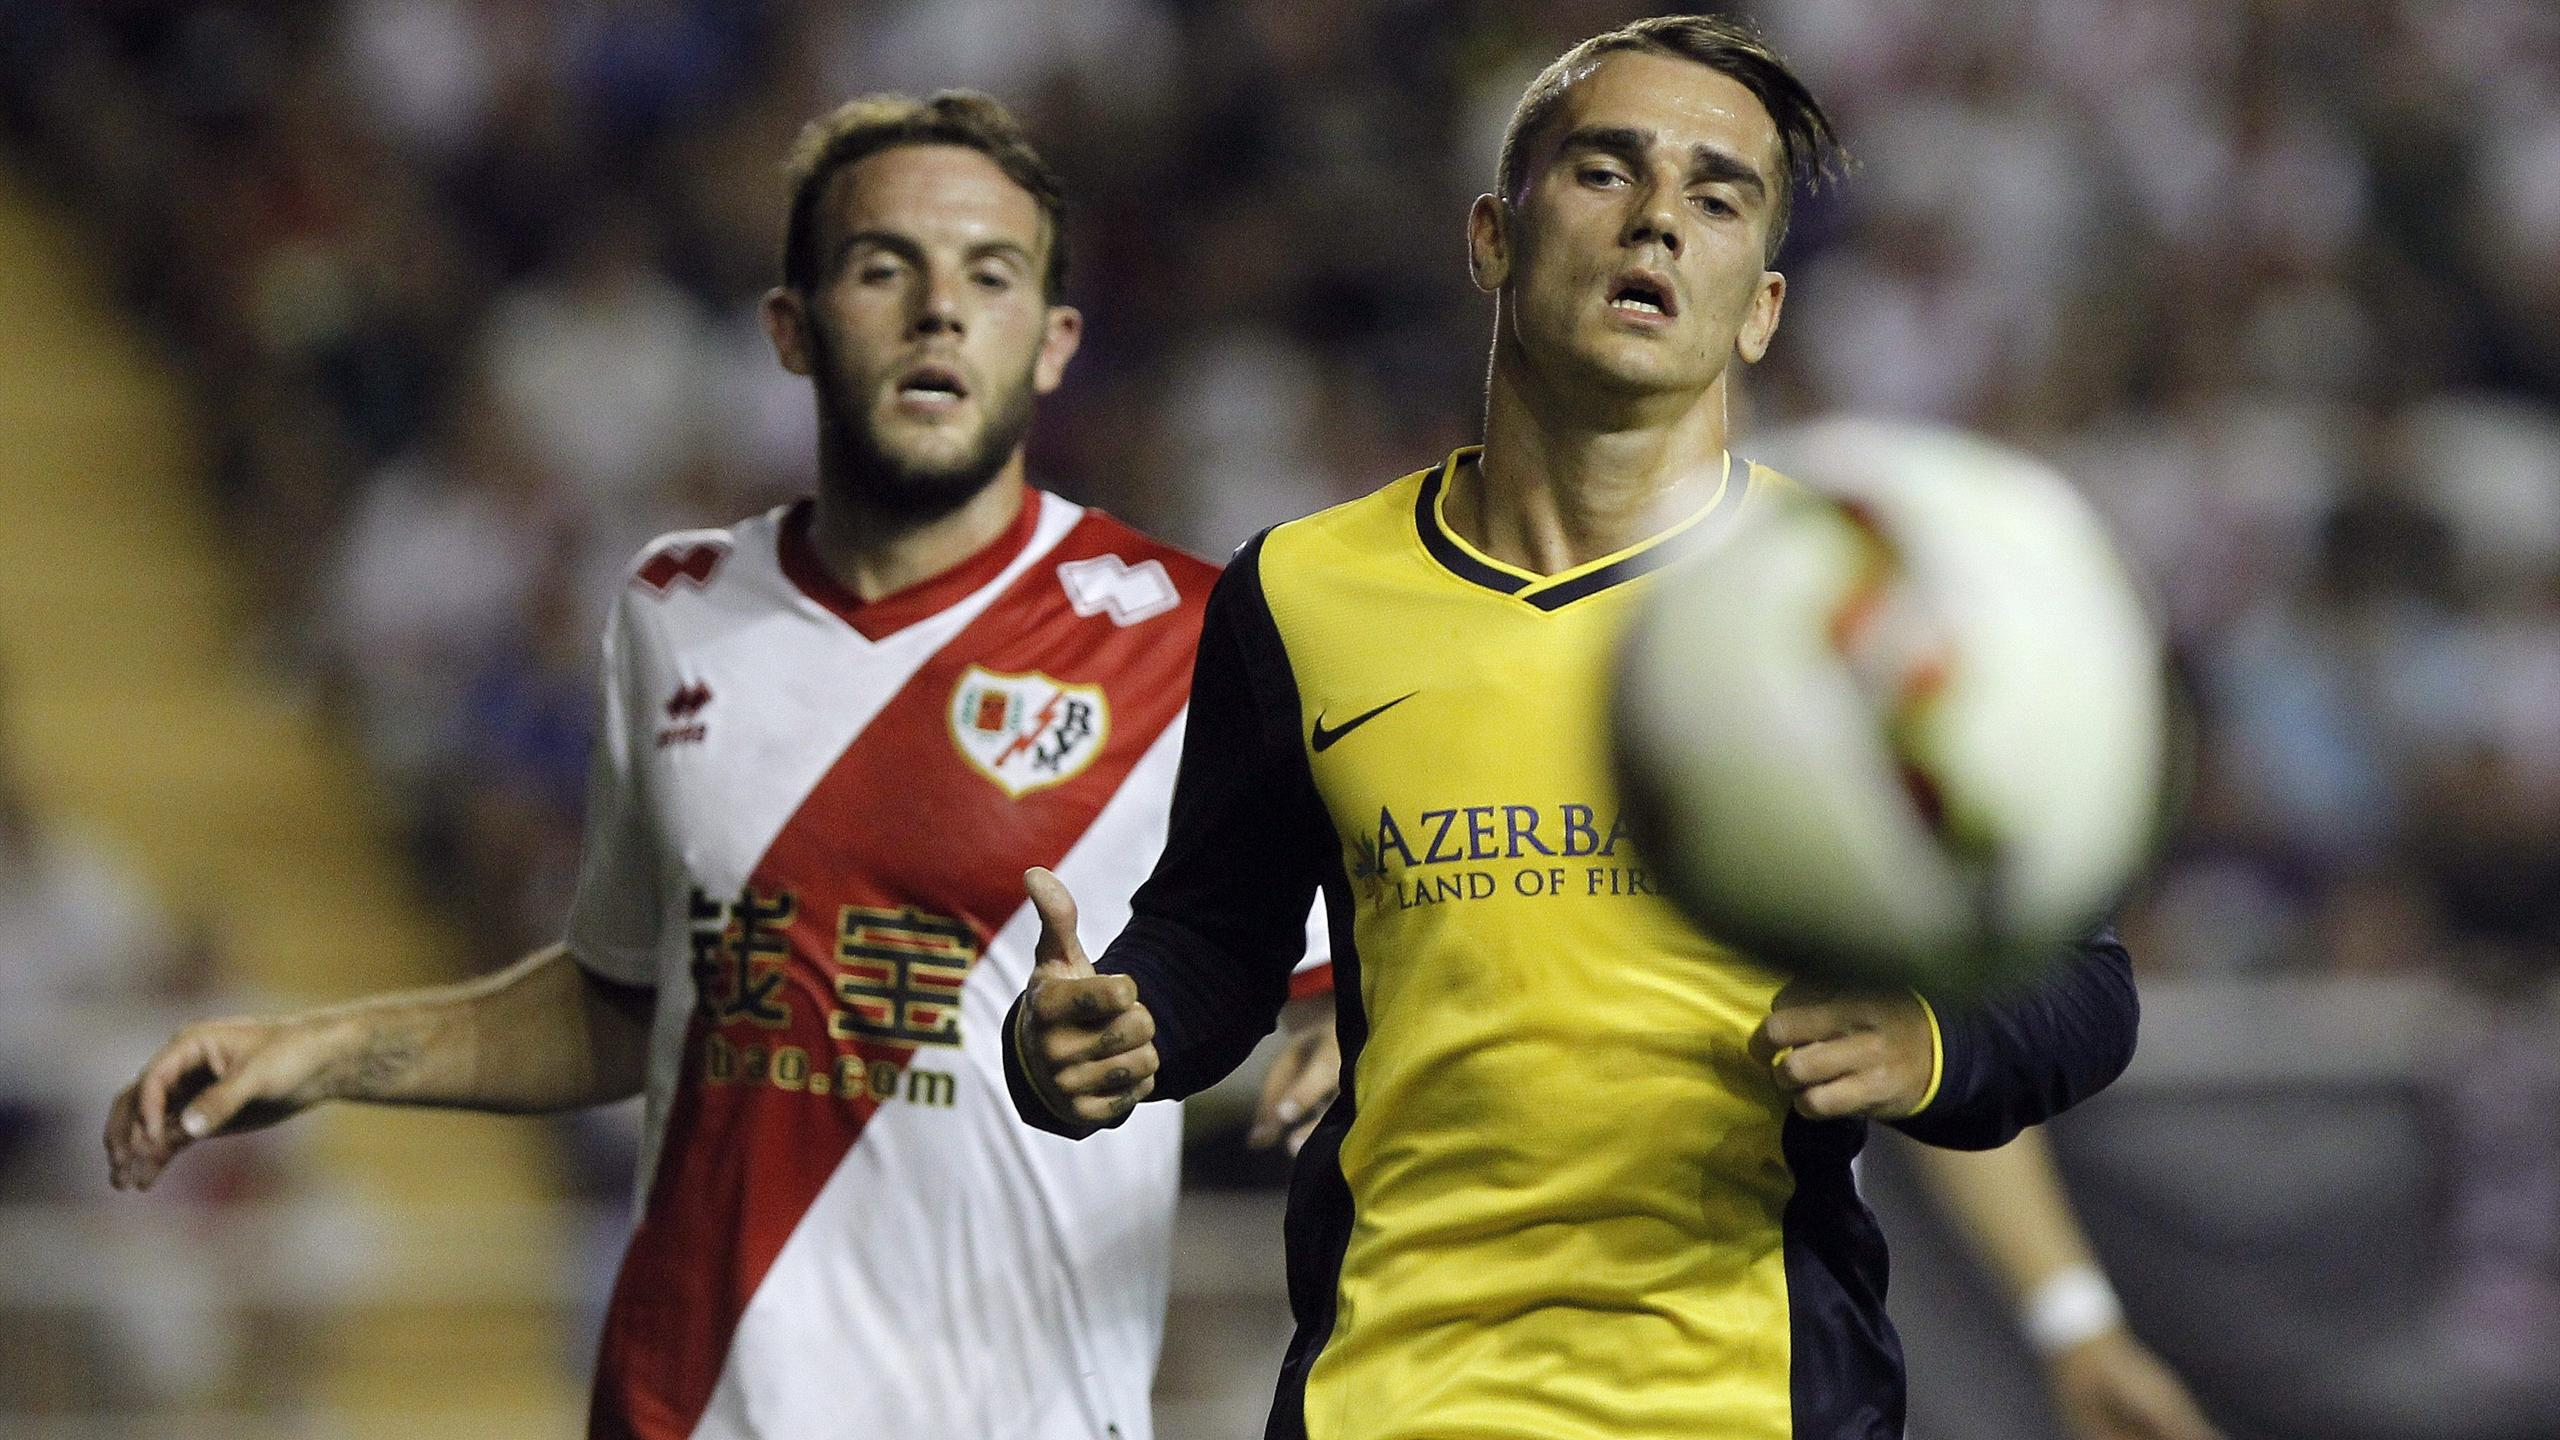 Video: Rayo Vallecano vs Atletico Madrid